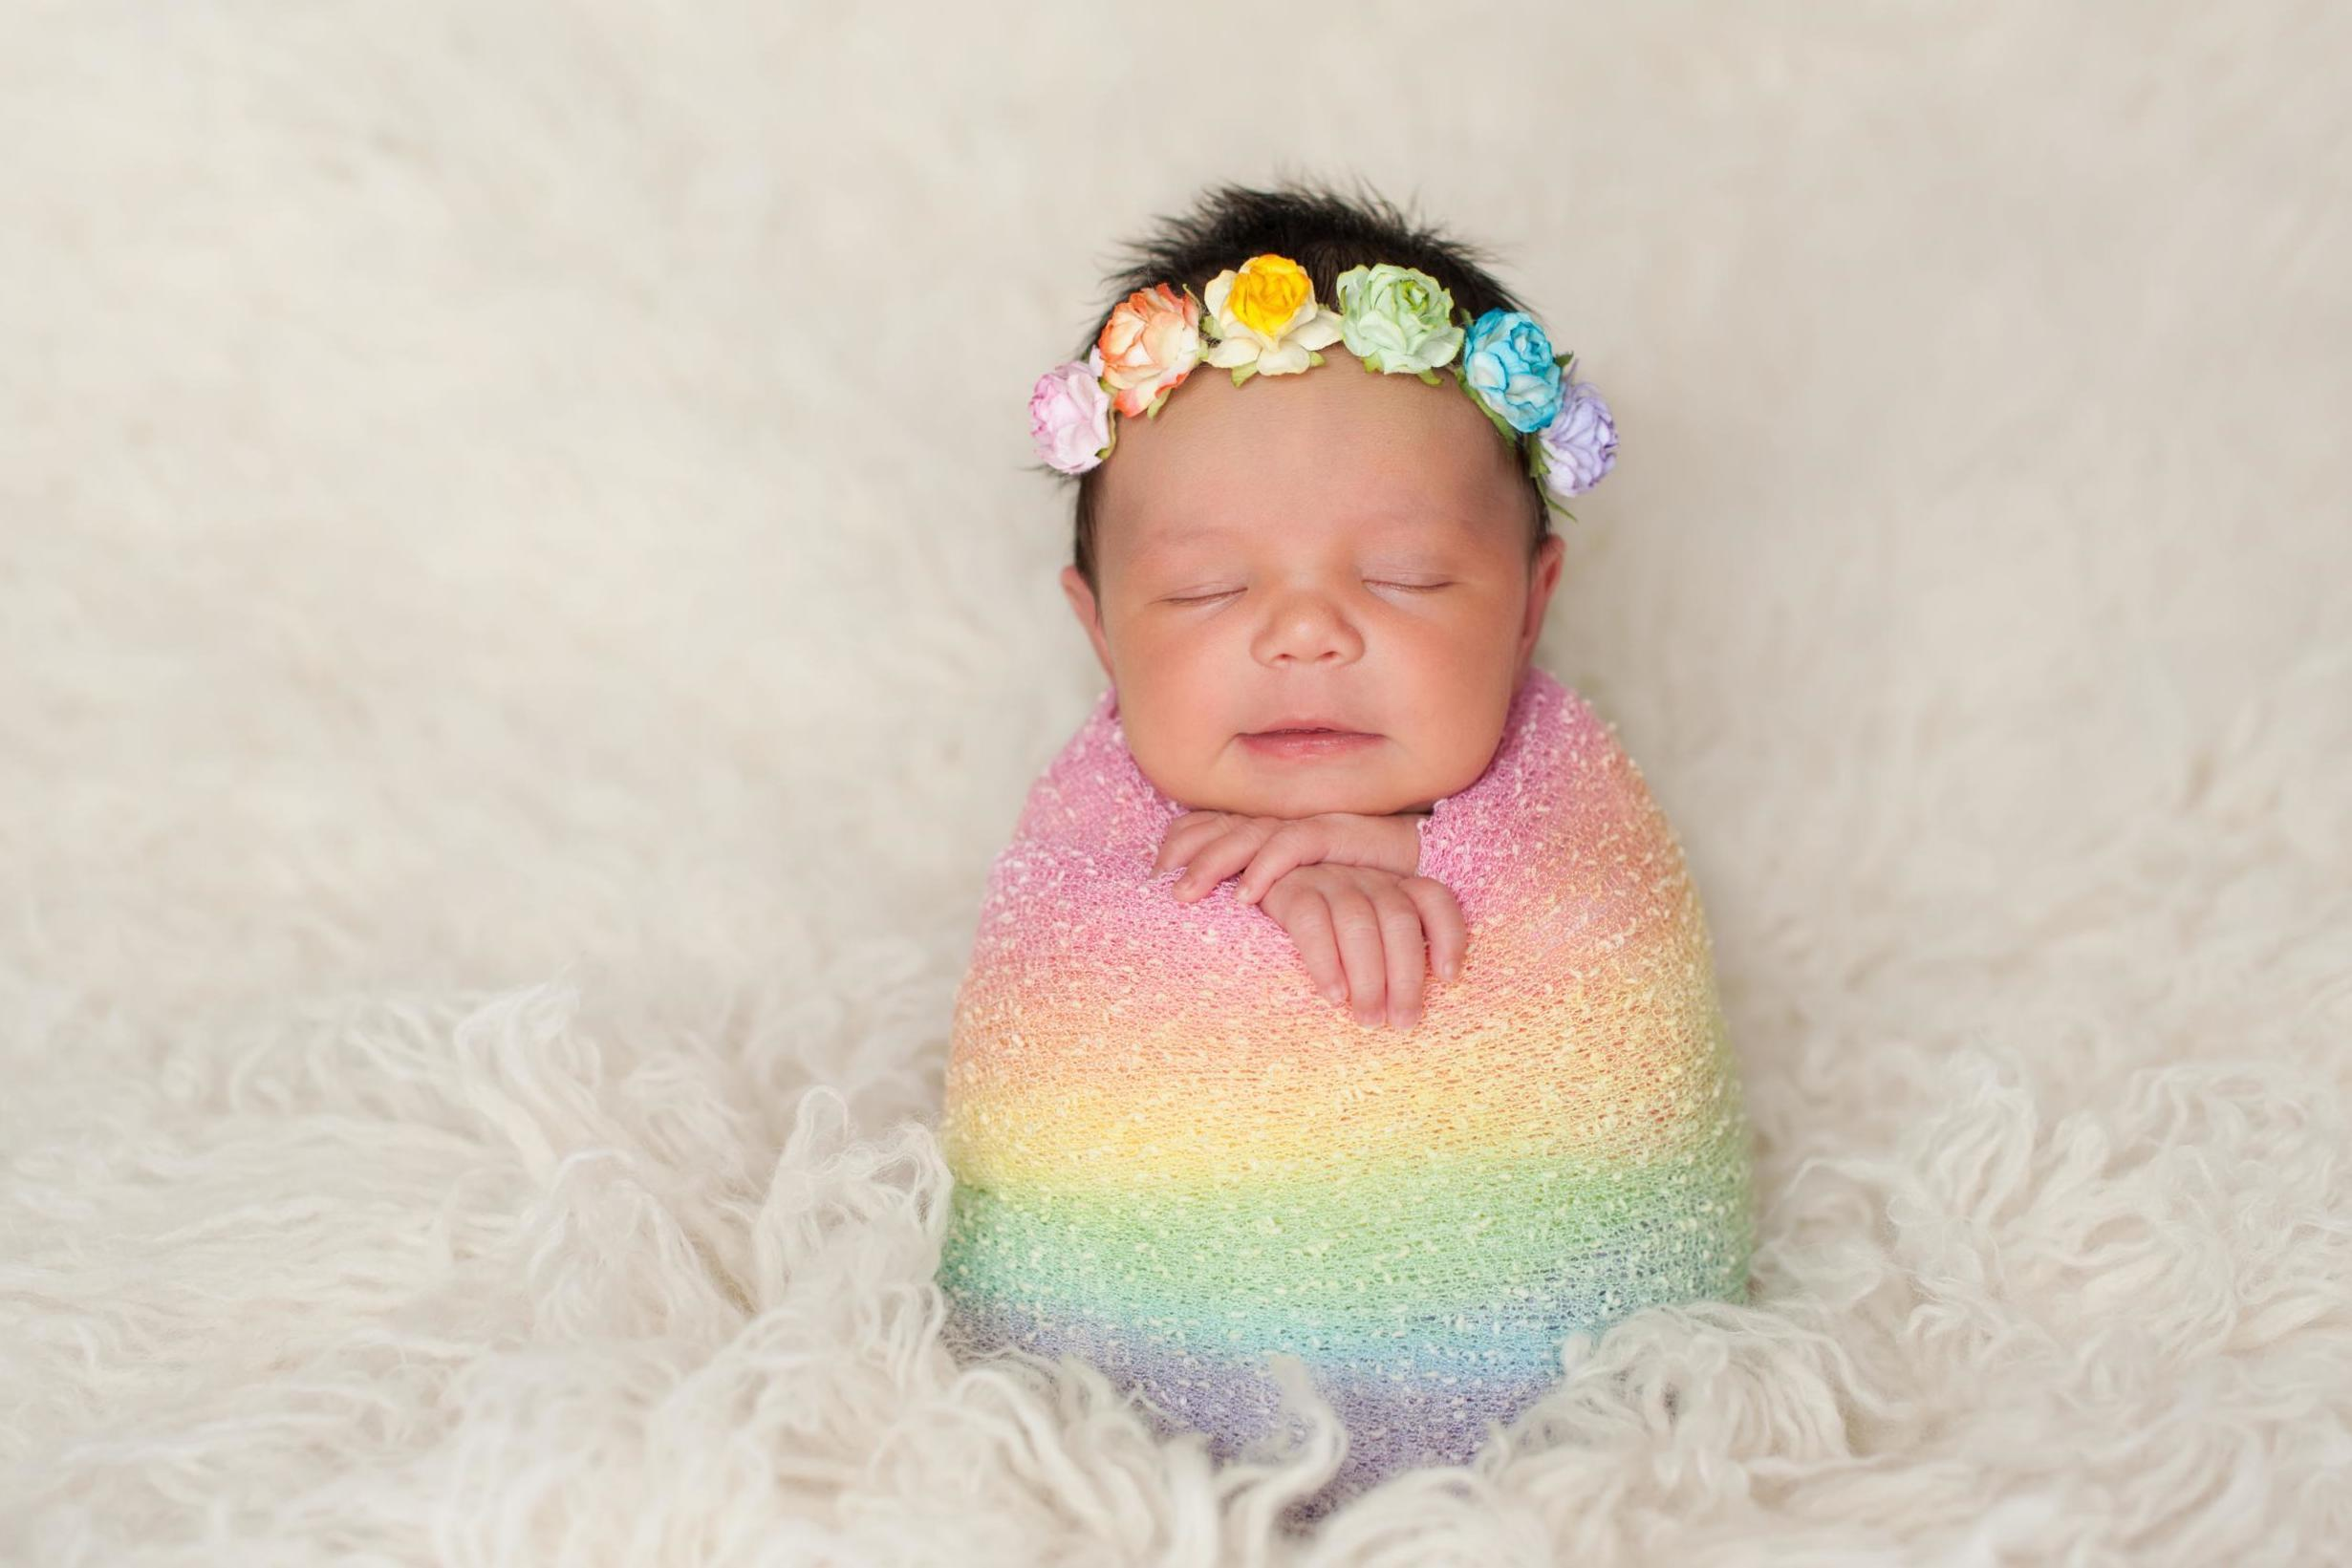 Most-popular baby names of 2019 so far in the UK revealed | The